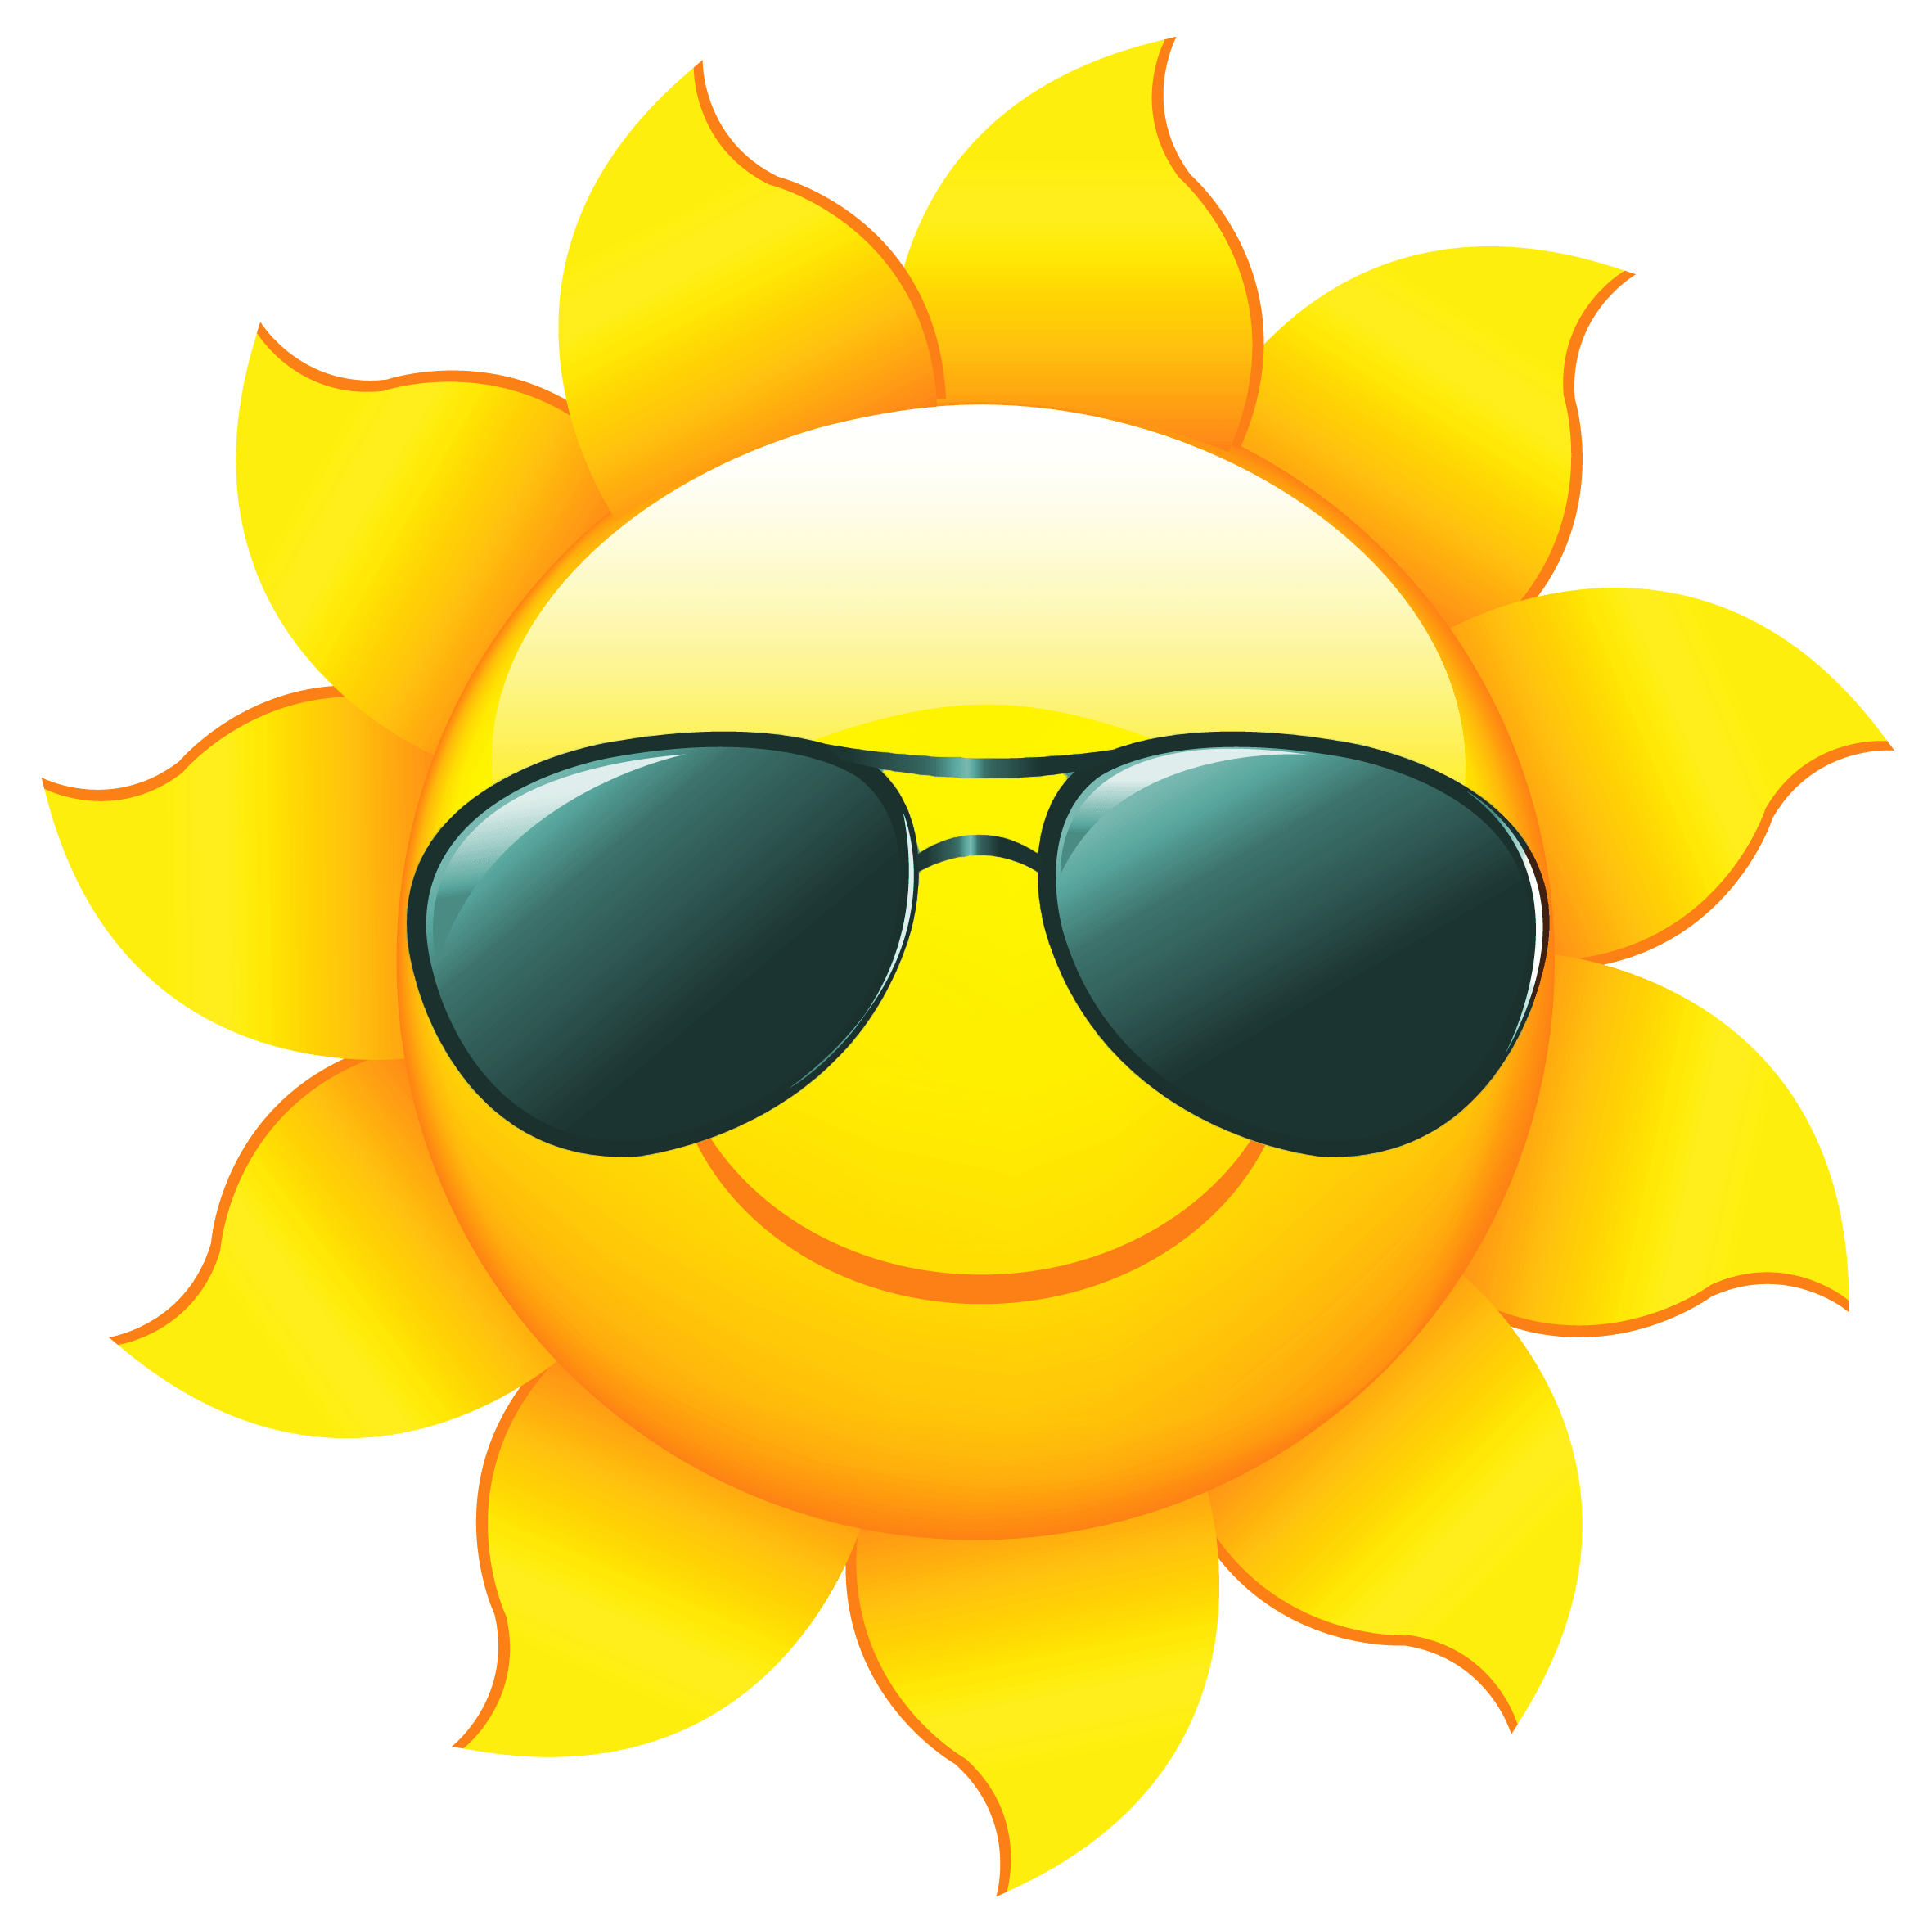 Earth and sun clipart. The us beauty of